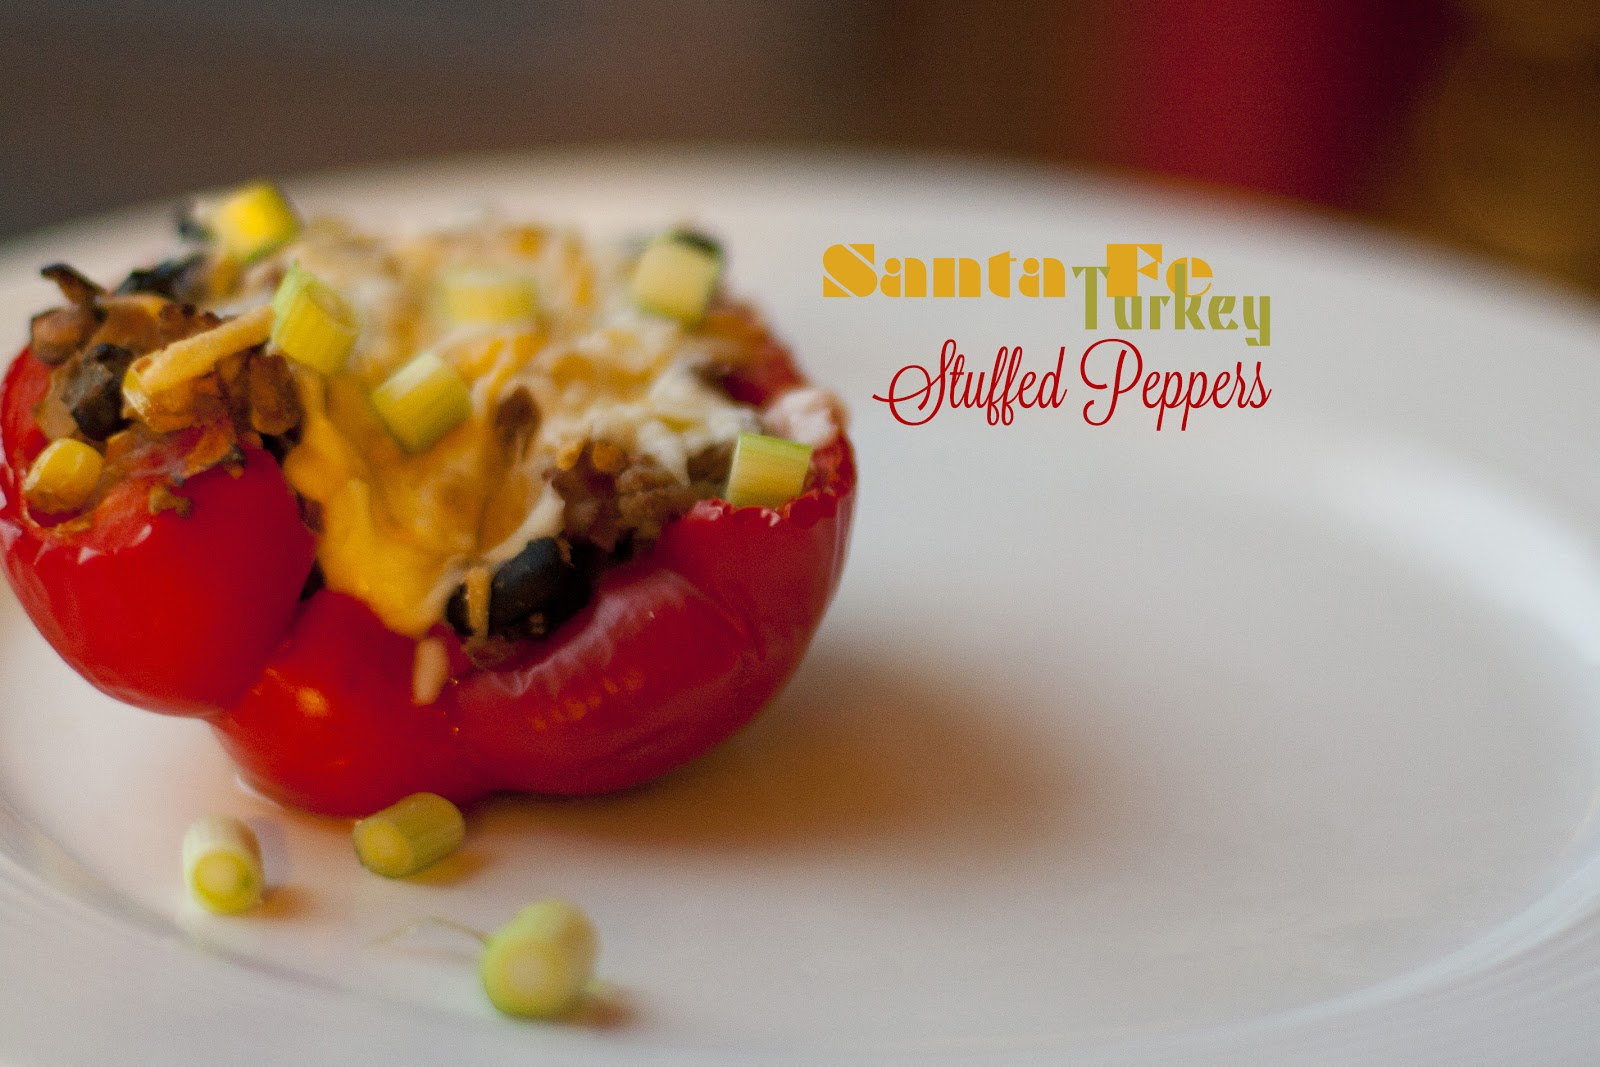 ... Life: IN OUR KITCHEN | Santa Fe Turkey Stuffed Peppers by Skinnytaste